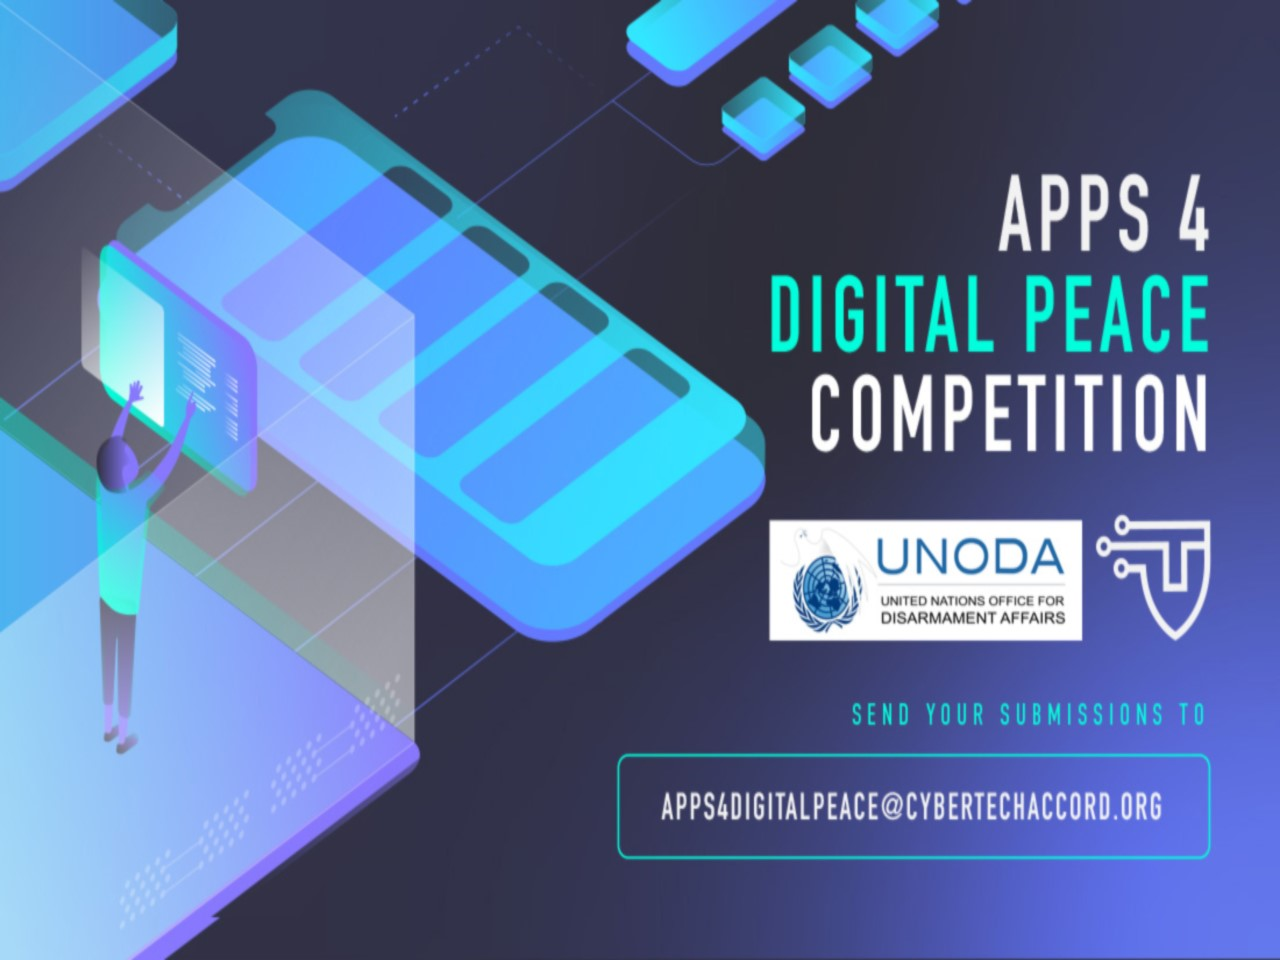 Apps 4 digital peace